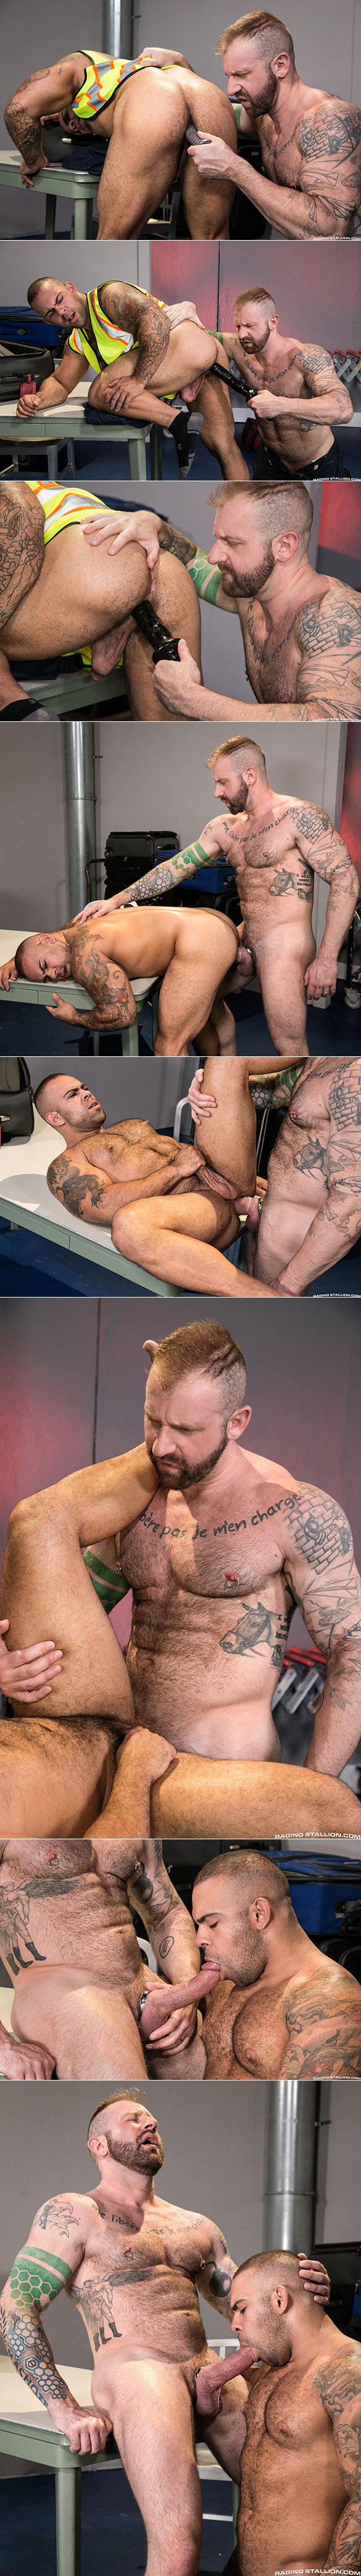 "Raging Stallion: Aleks Buldocek stretches Lorenzo Flexx's hole in ""TSA Checkpoint"""